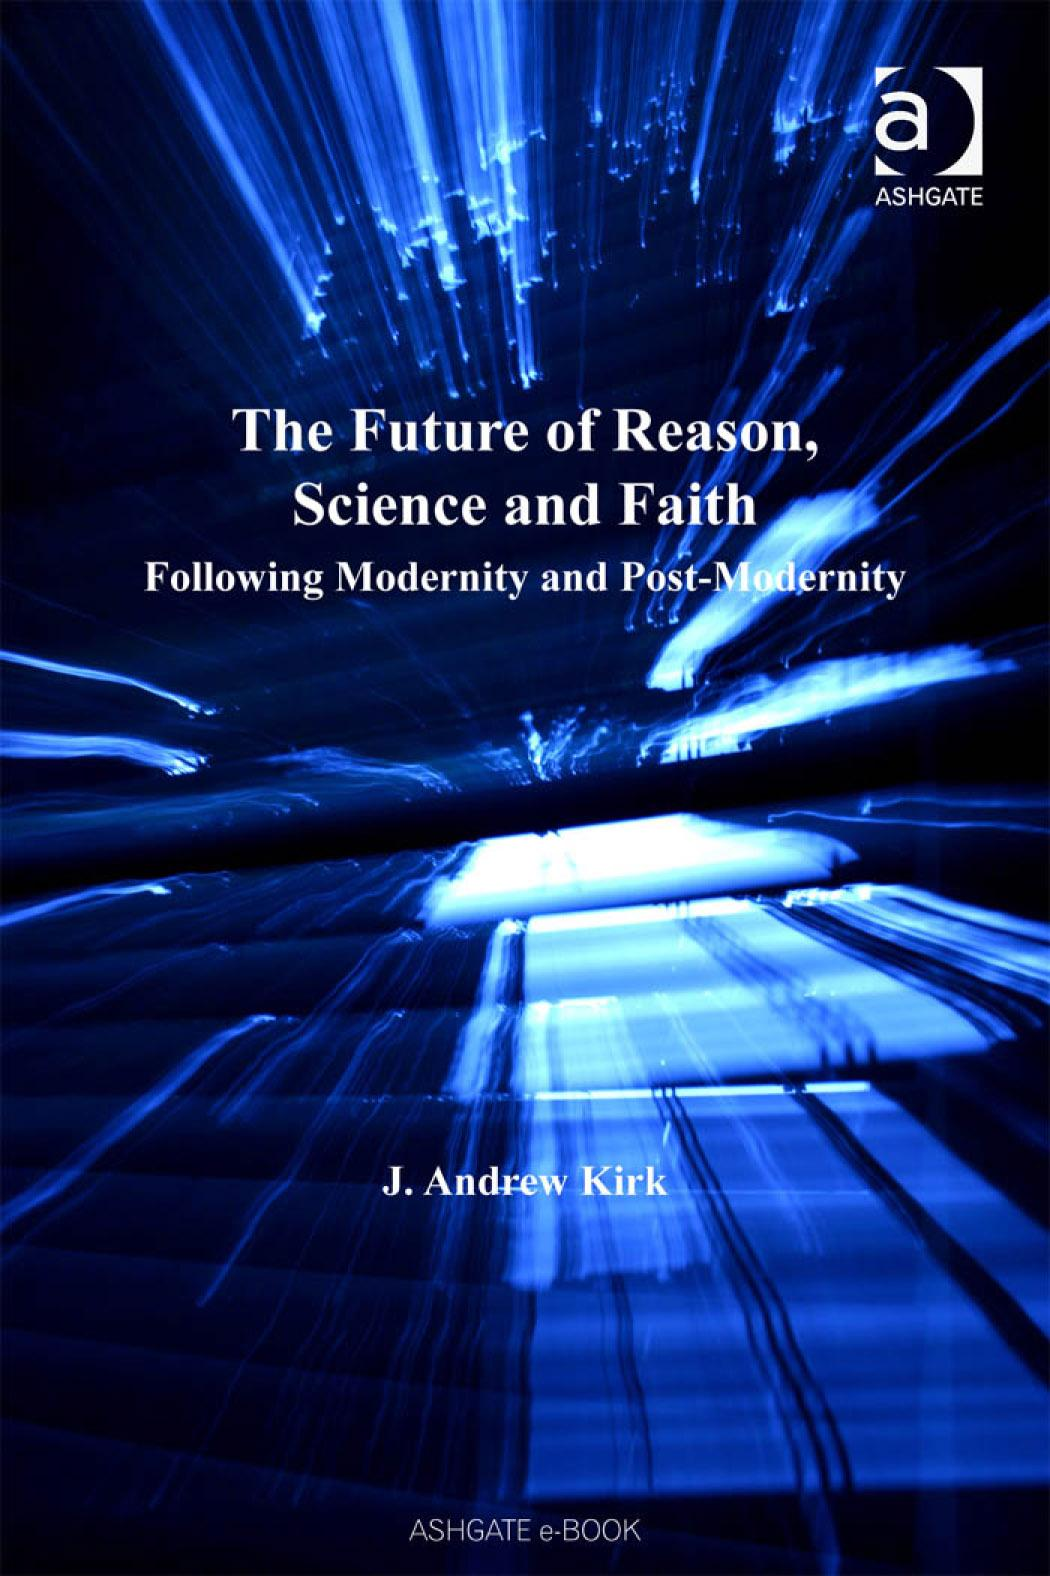 Future of Reason, Science and Faith, The: Following Modernity and Post-Modernity